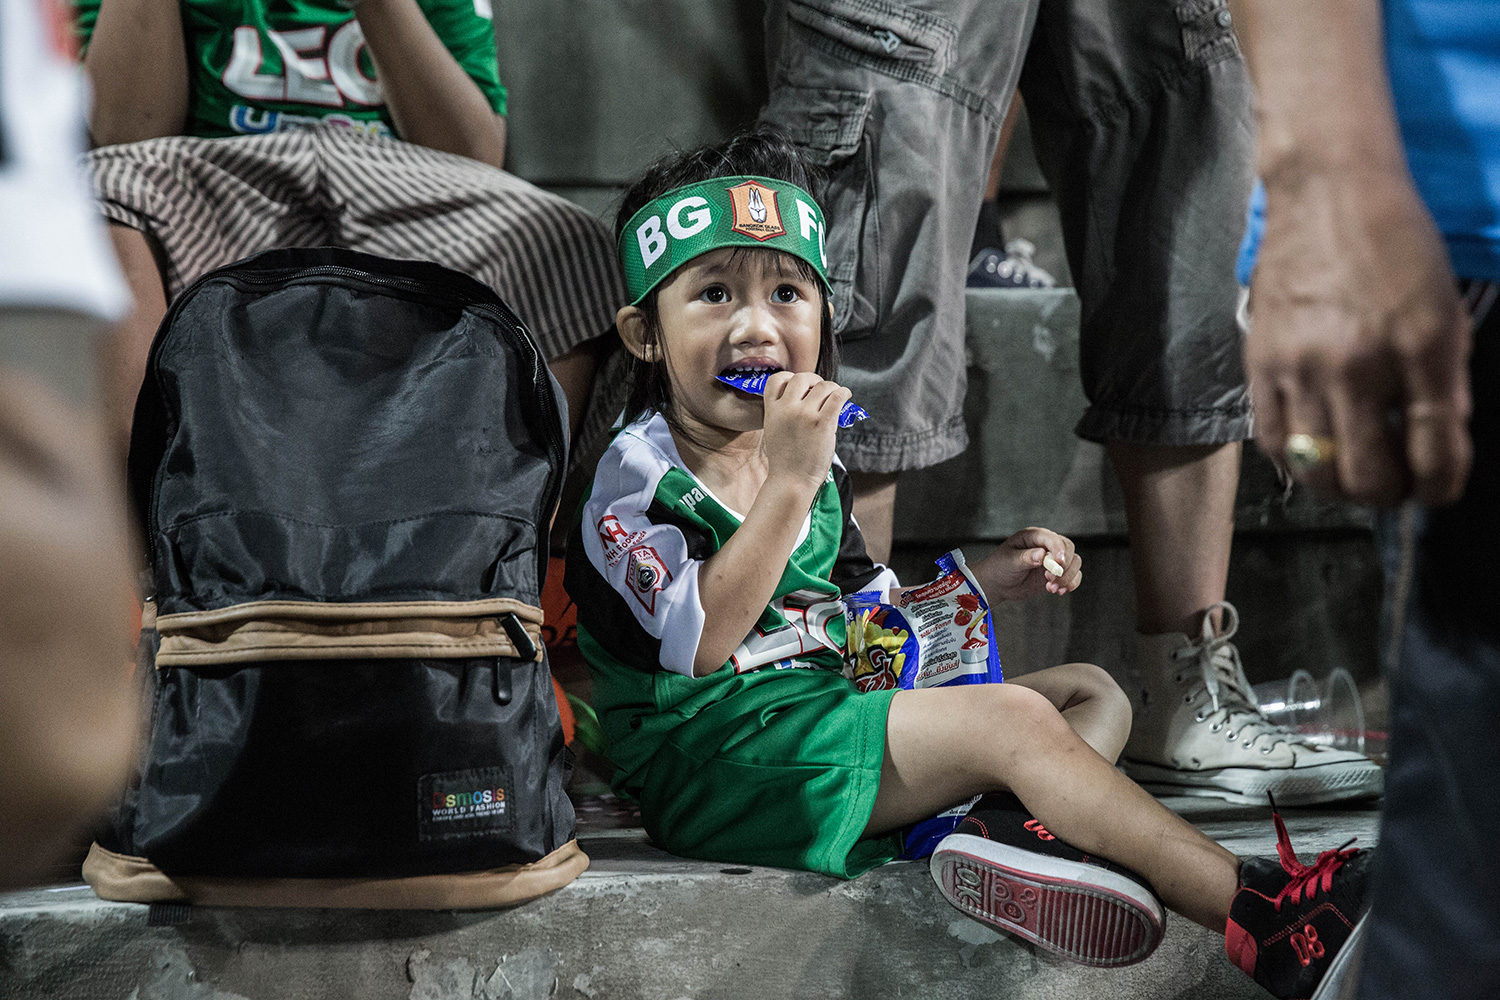 bangkokglass-vs-suphanburi-21